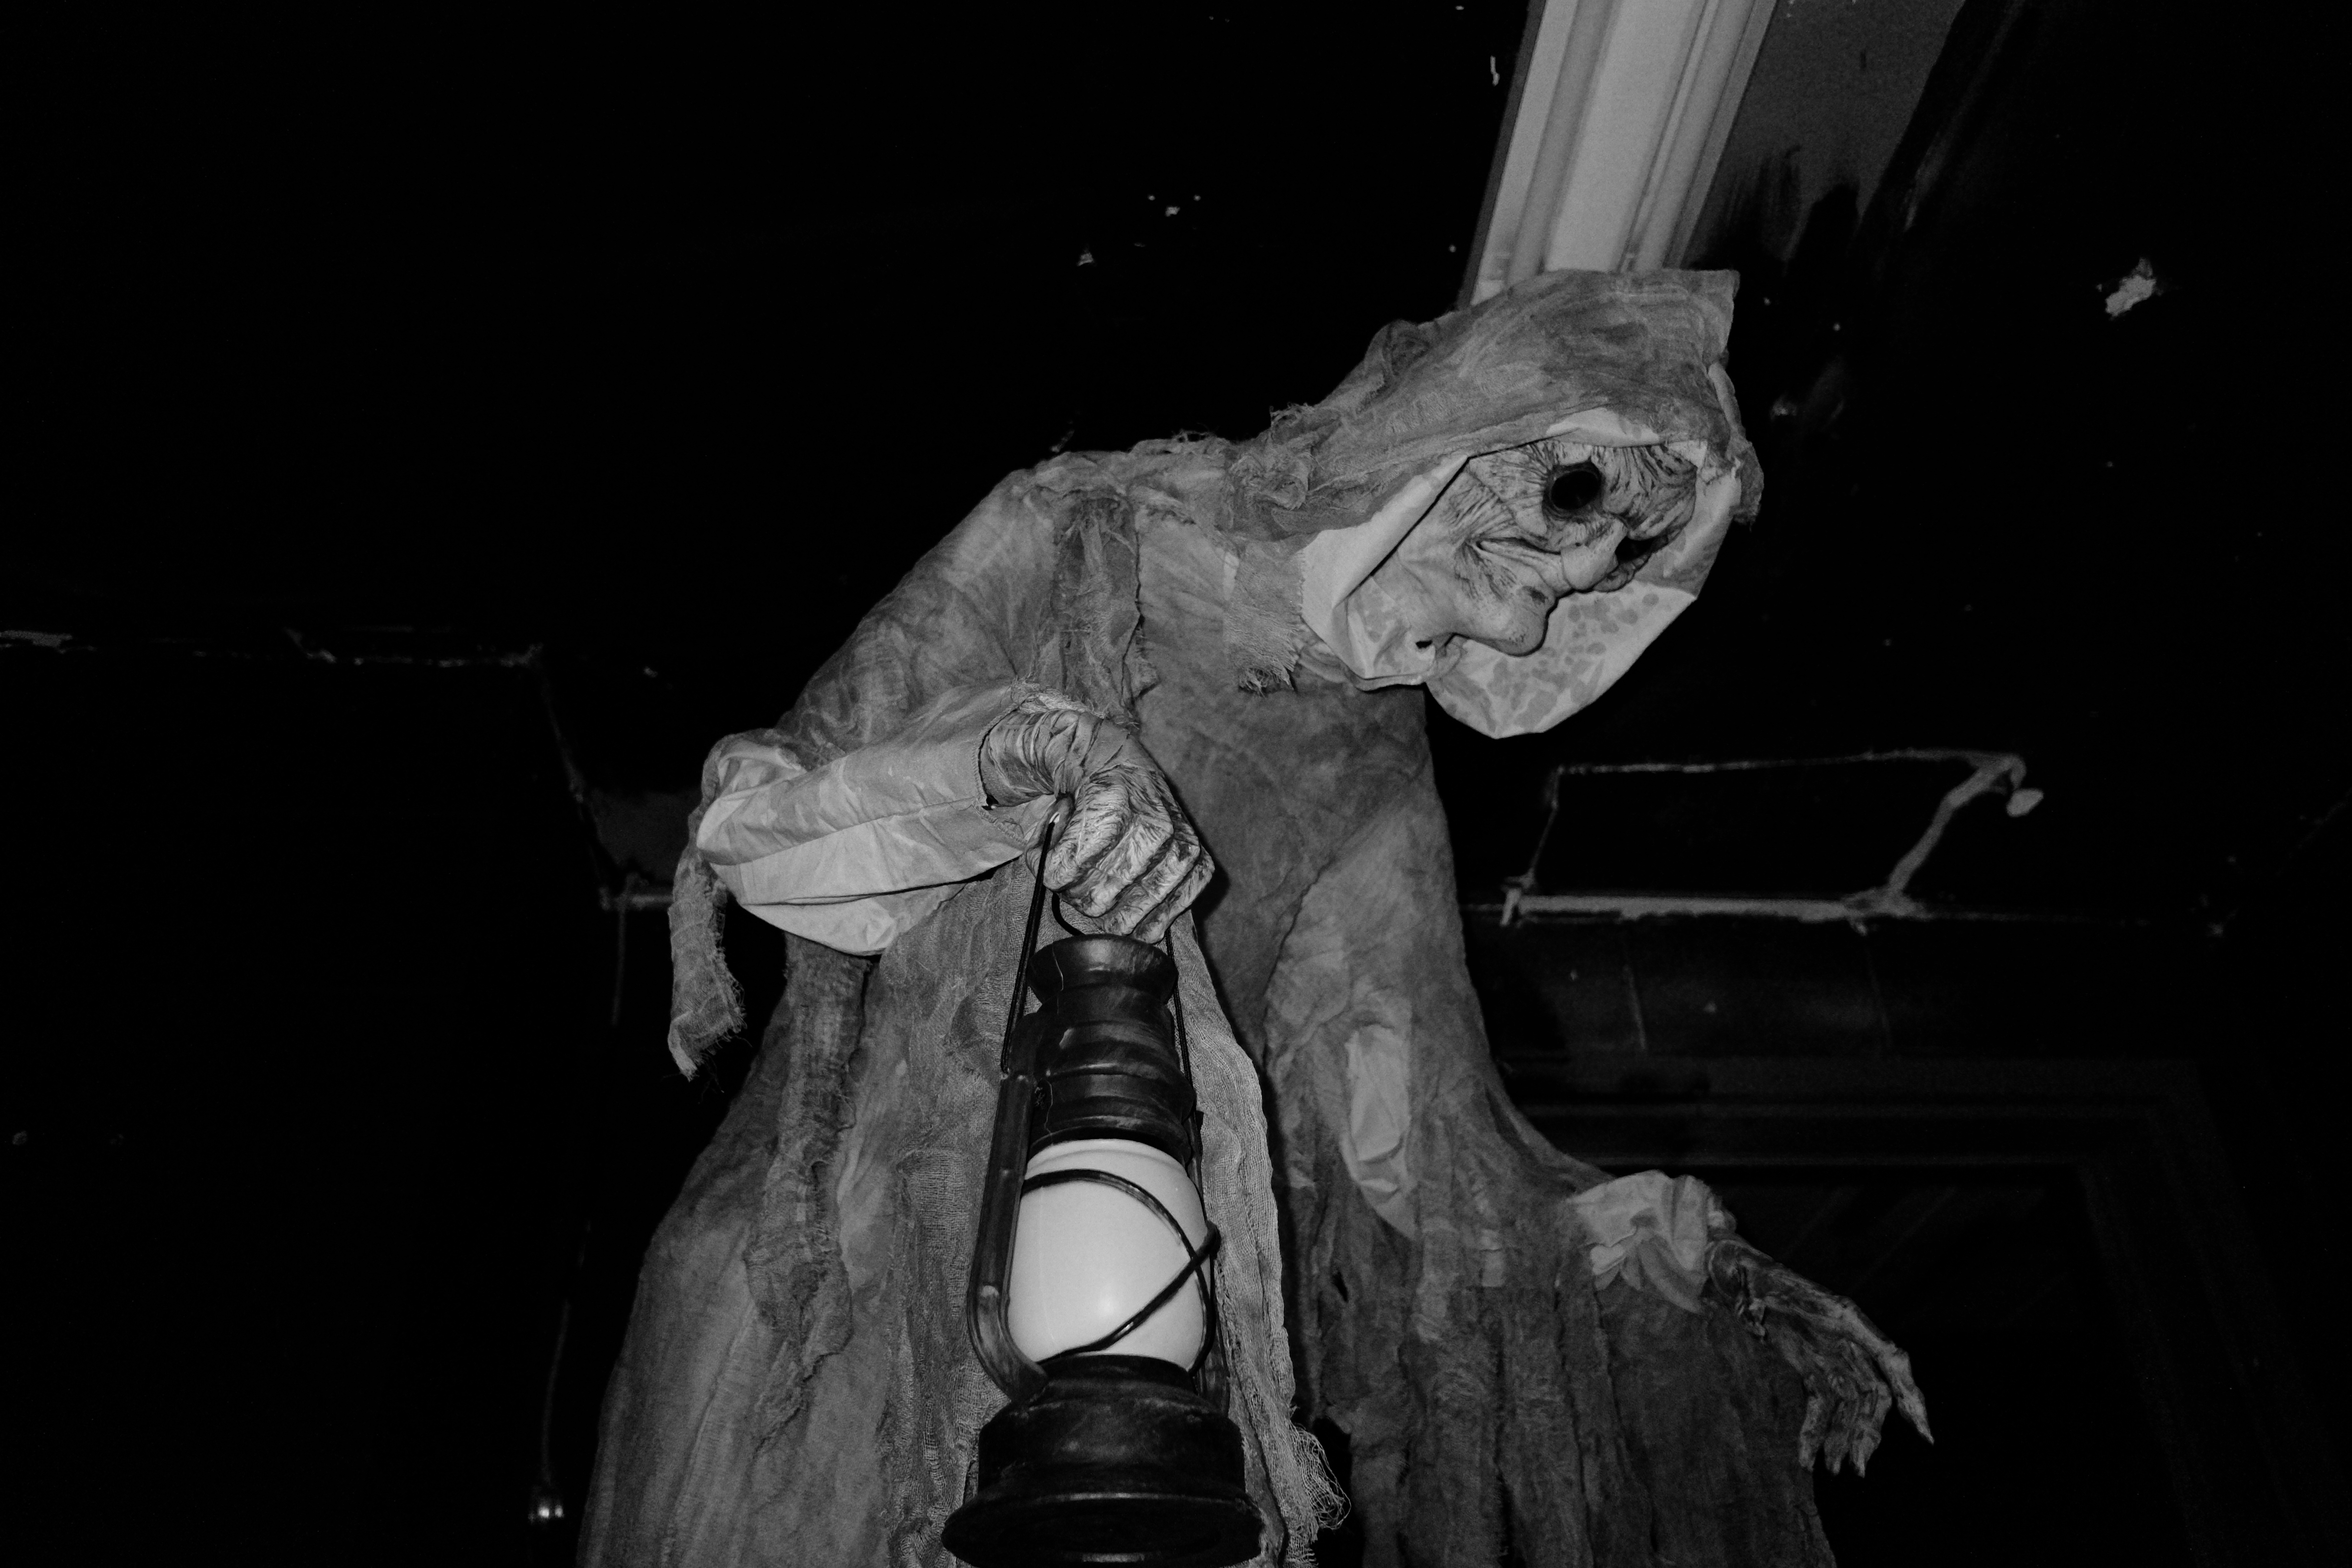 A black and white photo of an animatronic goblin.